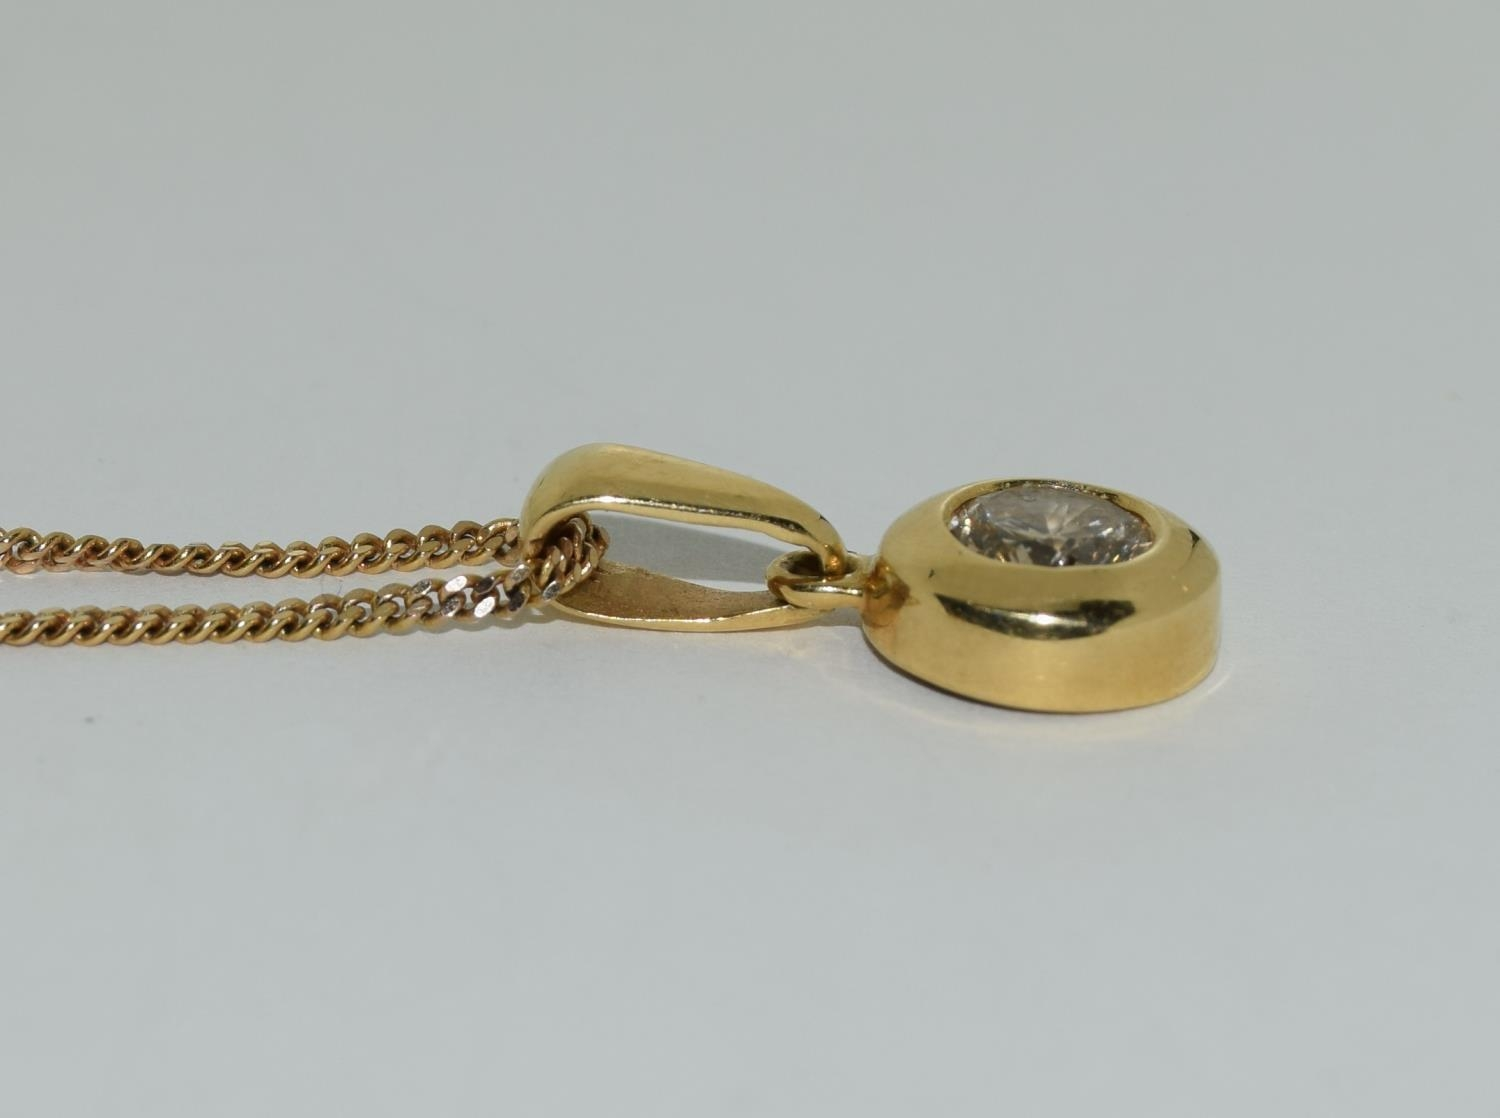 18ct gold diamond pendant of approx 0.6ct on a 9ct gold chain - Image 2 of 4